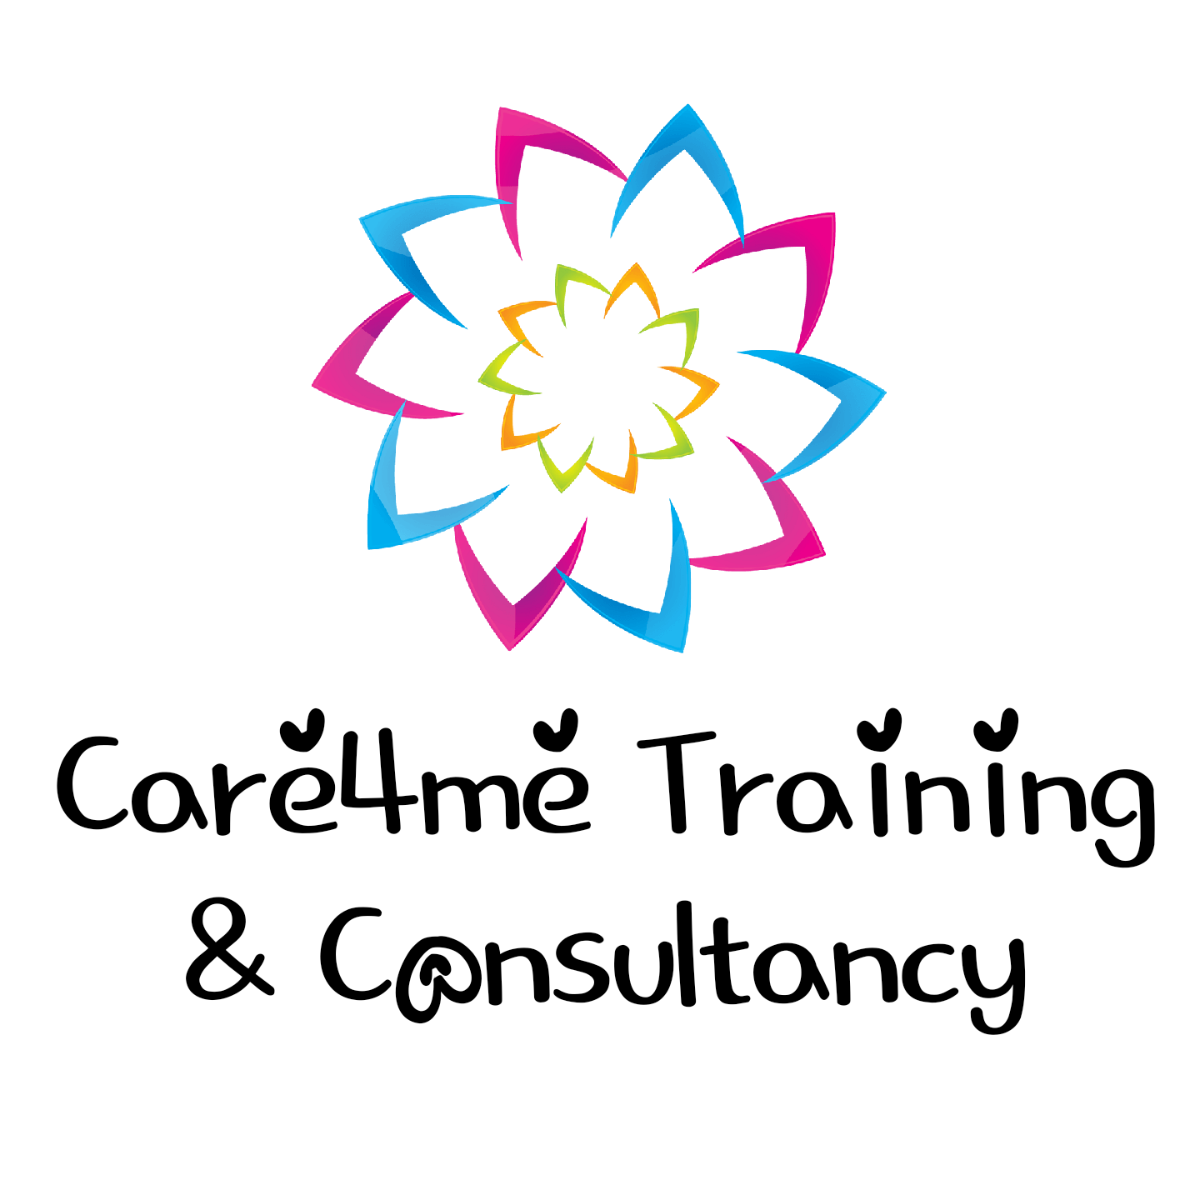 Care4me Training & Consultancy Limited